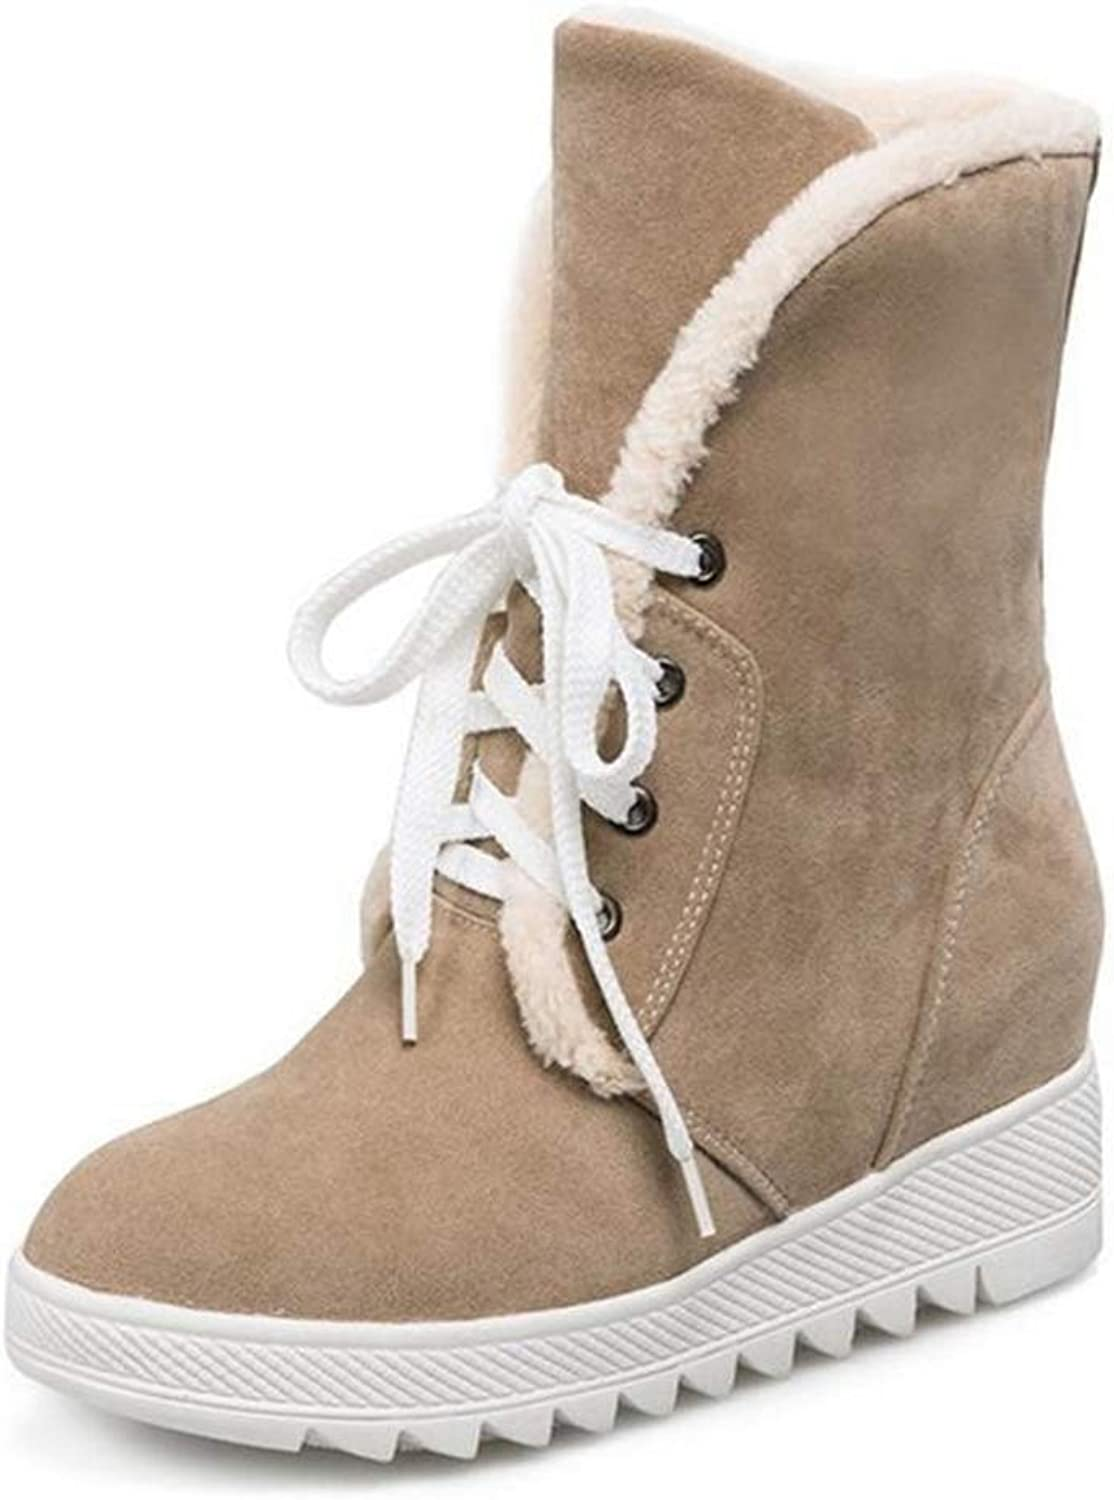 T-JULY Women Round Toe Flat Mid Calf Boots Woman Lace Up Stylish shoes Female Wonter Warm Cosy Thickened Fur Half Botas